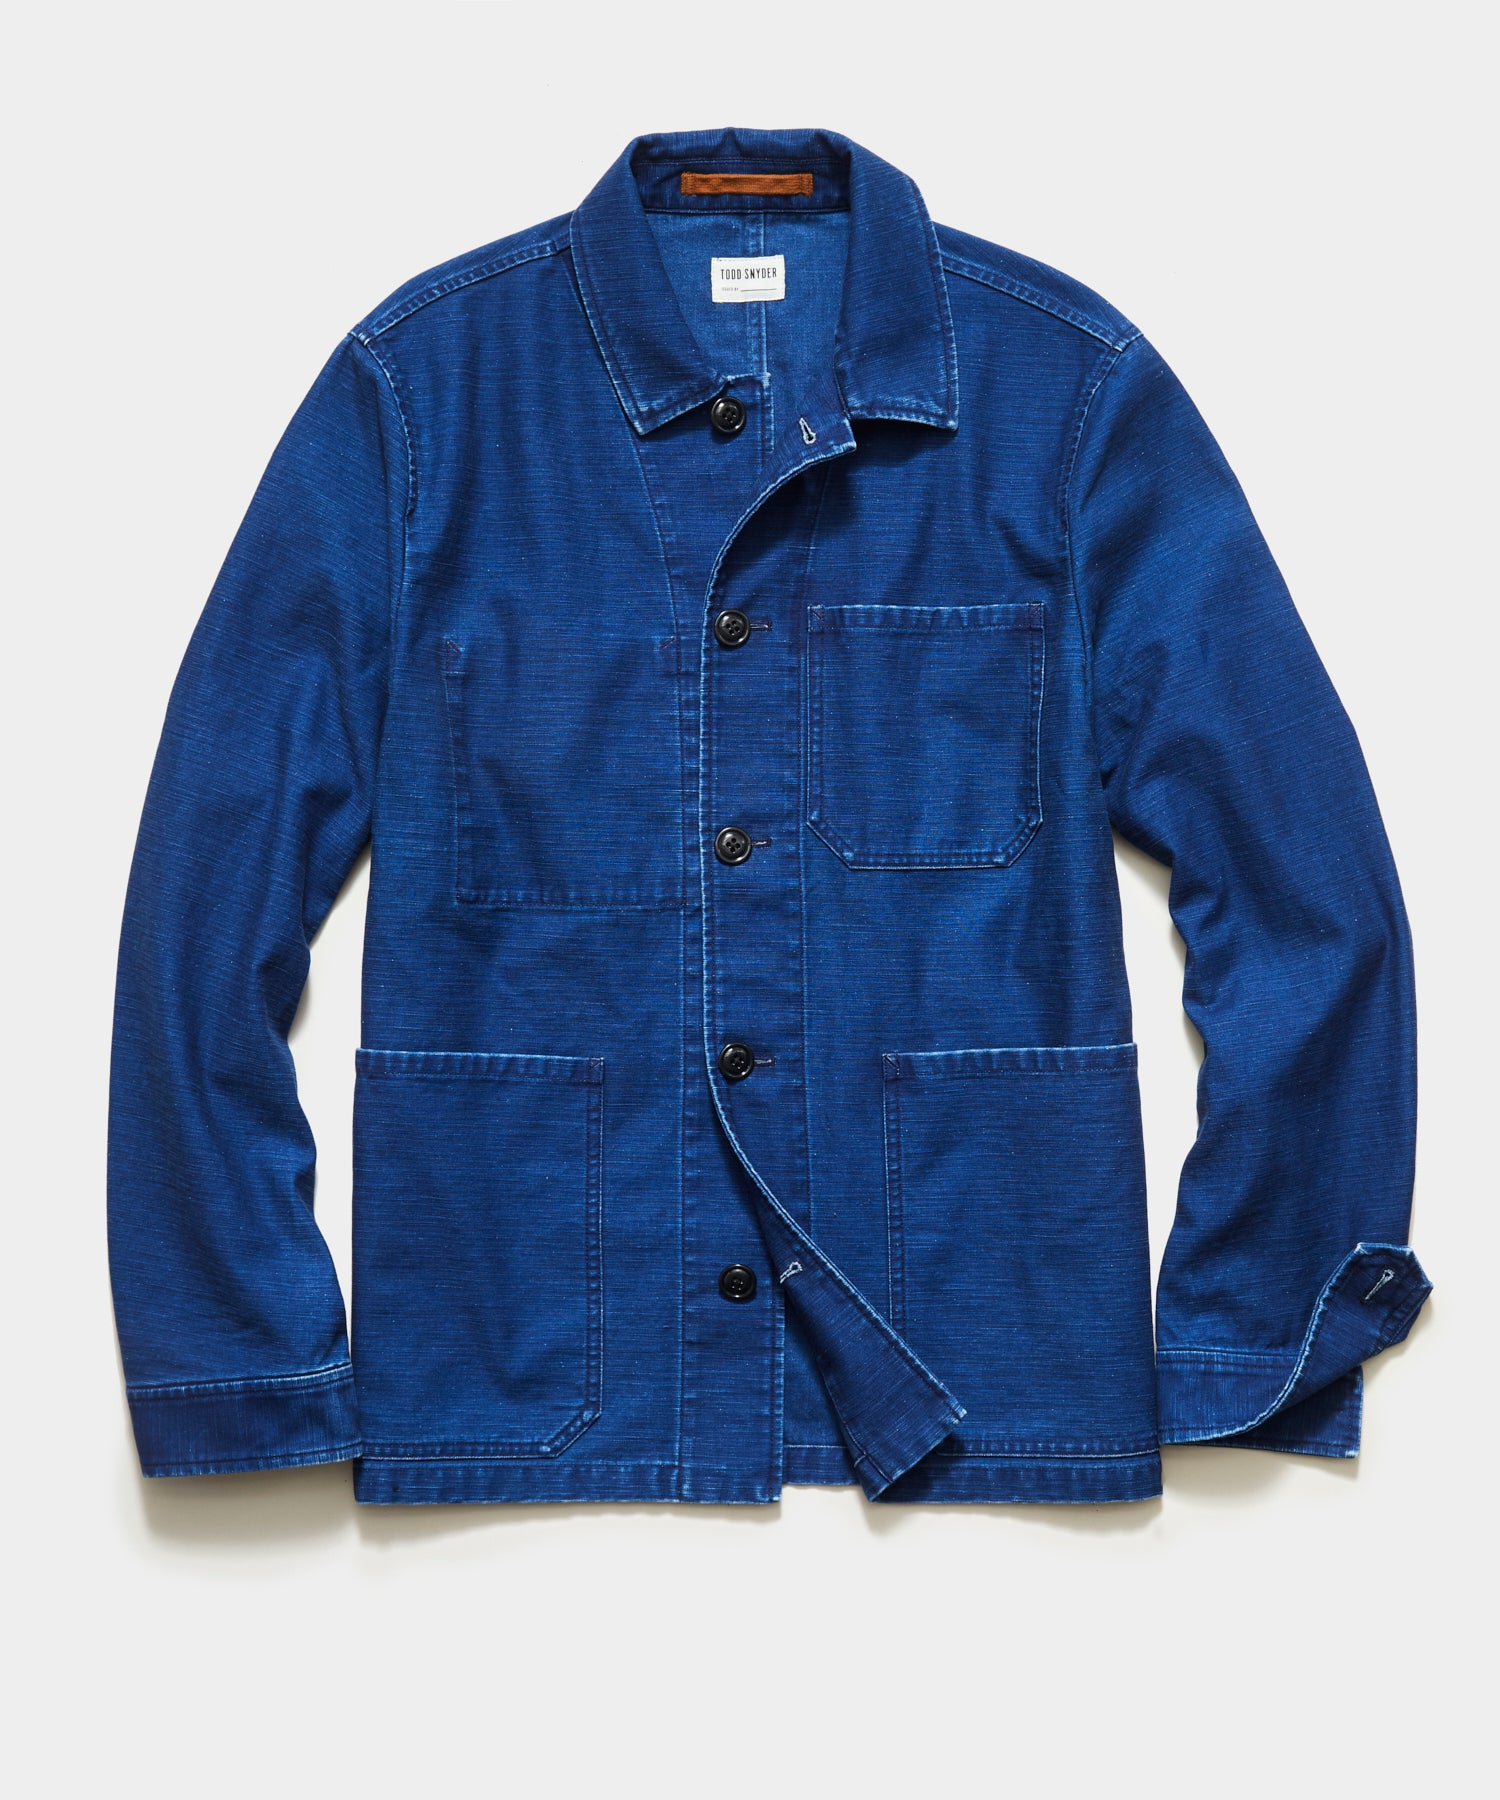 Japanese Chore Coat In Indigo